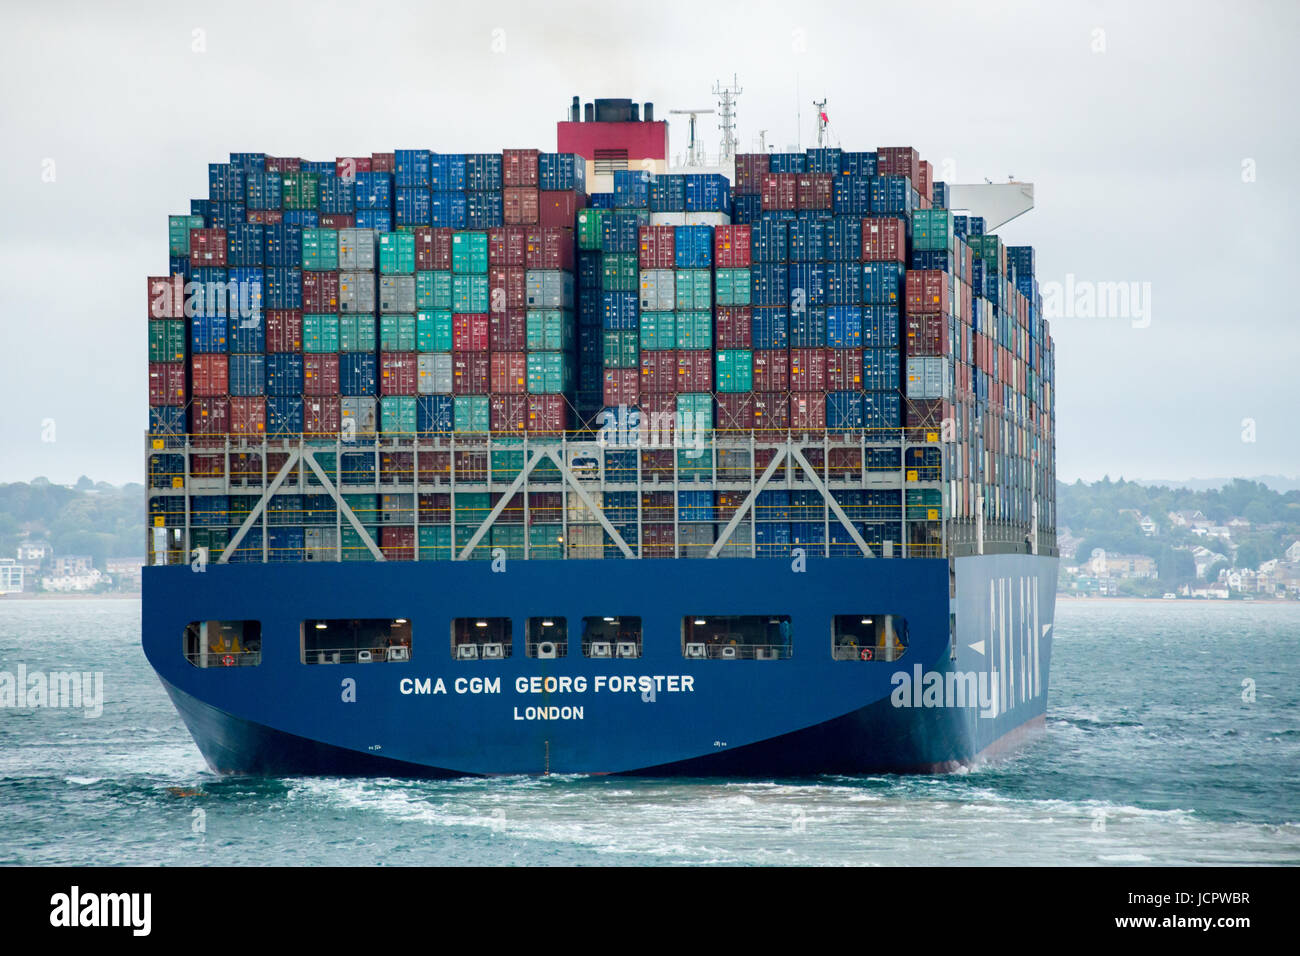 Large container ship, the CMA CGM Georg Forster, in the Solent leaving Southampton docks, England - Stock Image